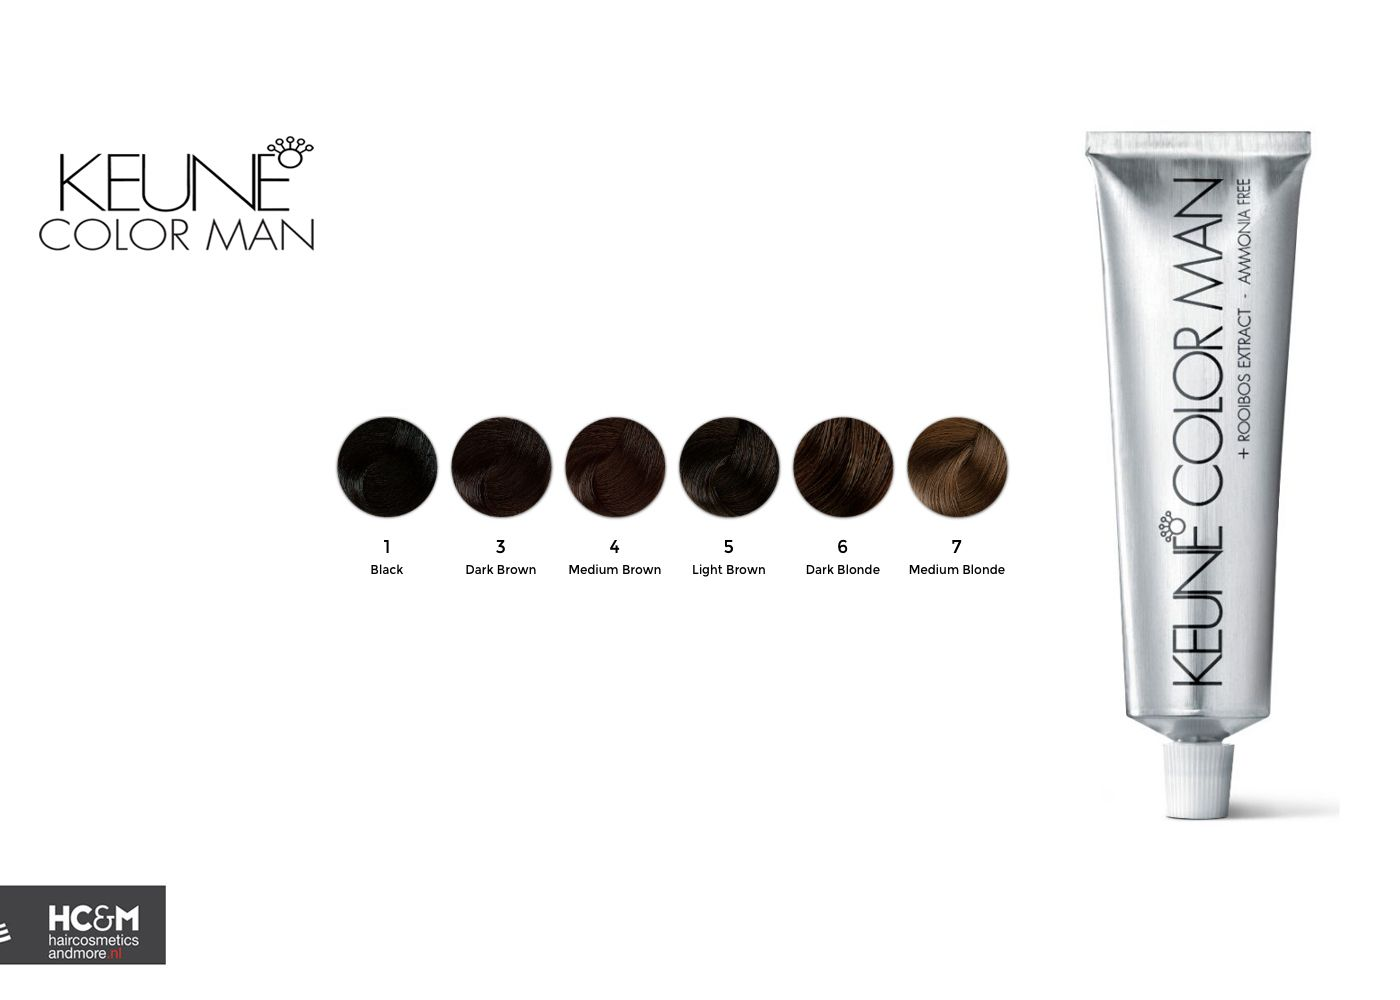 Keune Color Man Shades 2015 Hair Color Chart Brown To Blonde Color Chart